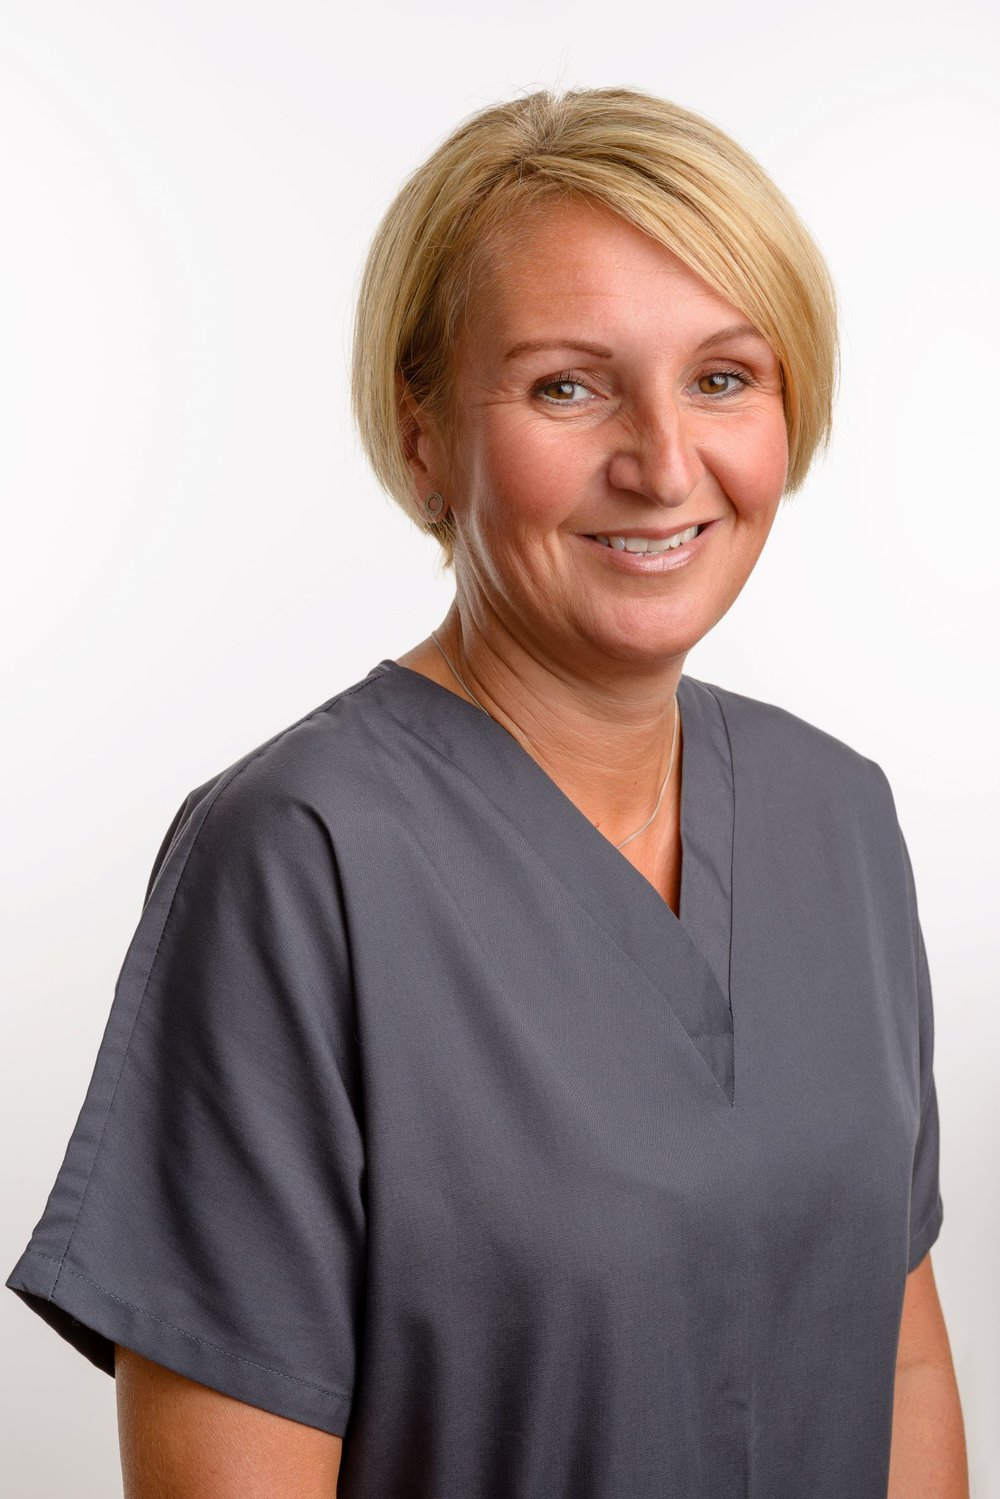 Lisa LabordeDental Nurse - National Certificate in Dental NursingGDC reg no: 111921Lisa has been a dental nurse for 26 years! She gained her dental nursing qualification in May 1995 and since then she has worked in several practices including an Oral Surgery referral practice, where she gained a huge amount of experience including dealing with nervous and anxious patients. In her spare time she loves spending time with her family.